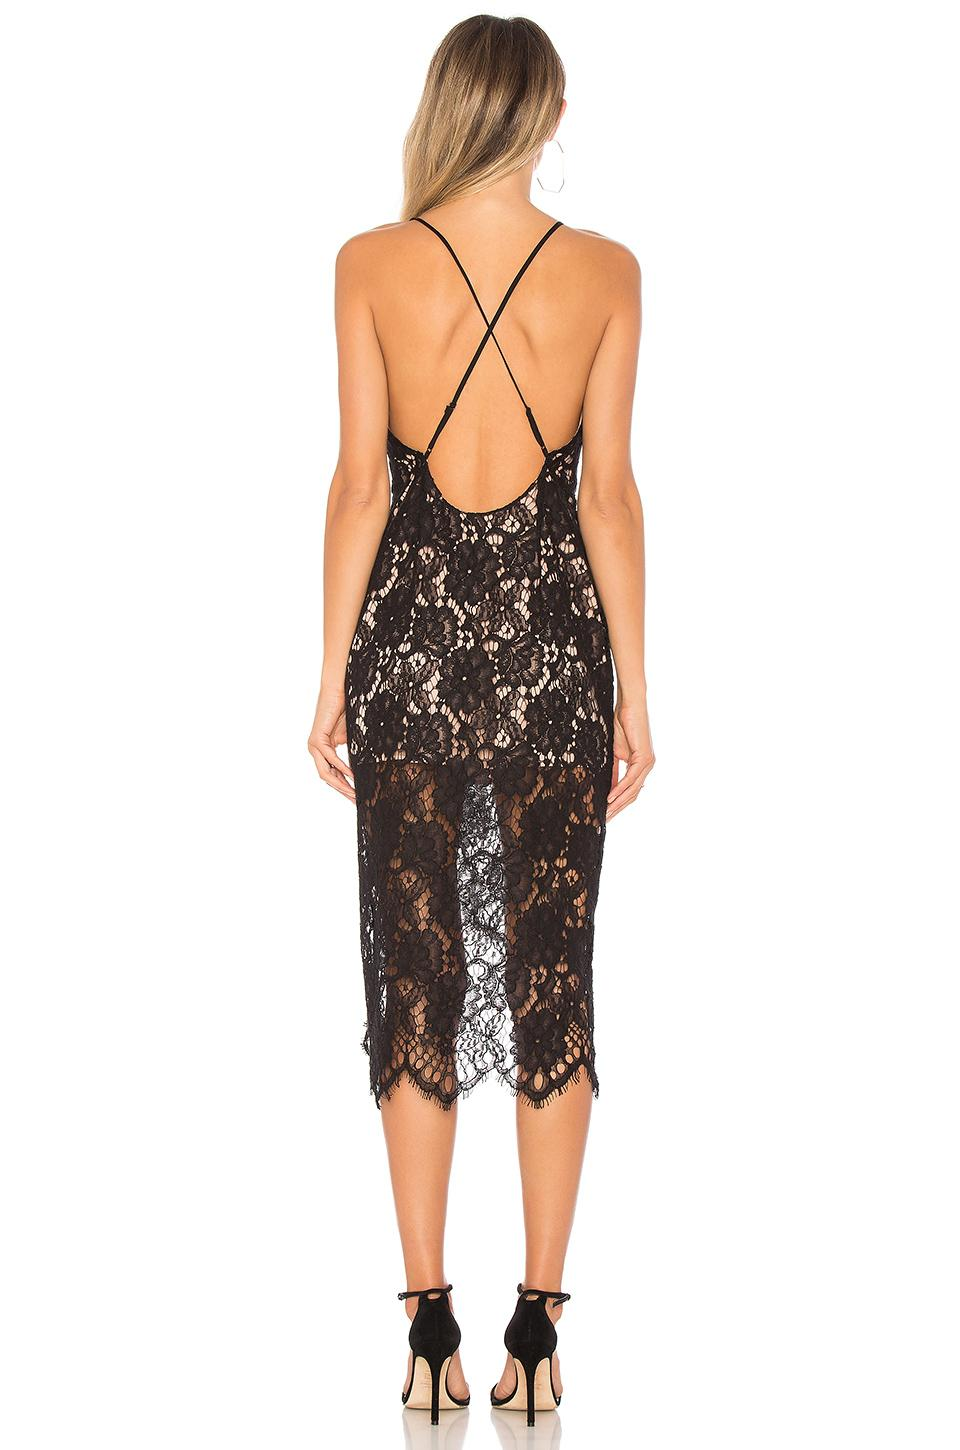 X by NBD Trace Dress in Black & Gold